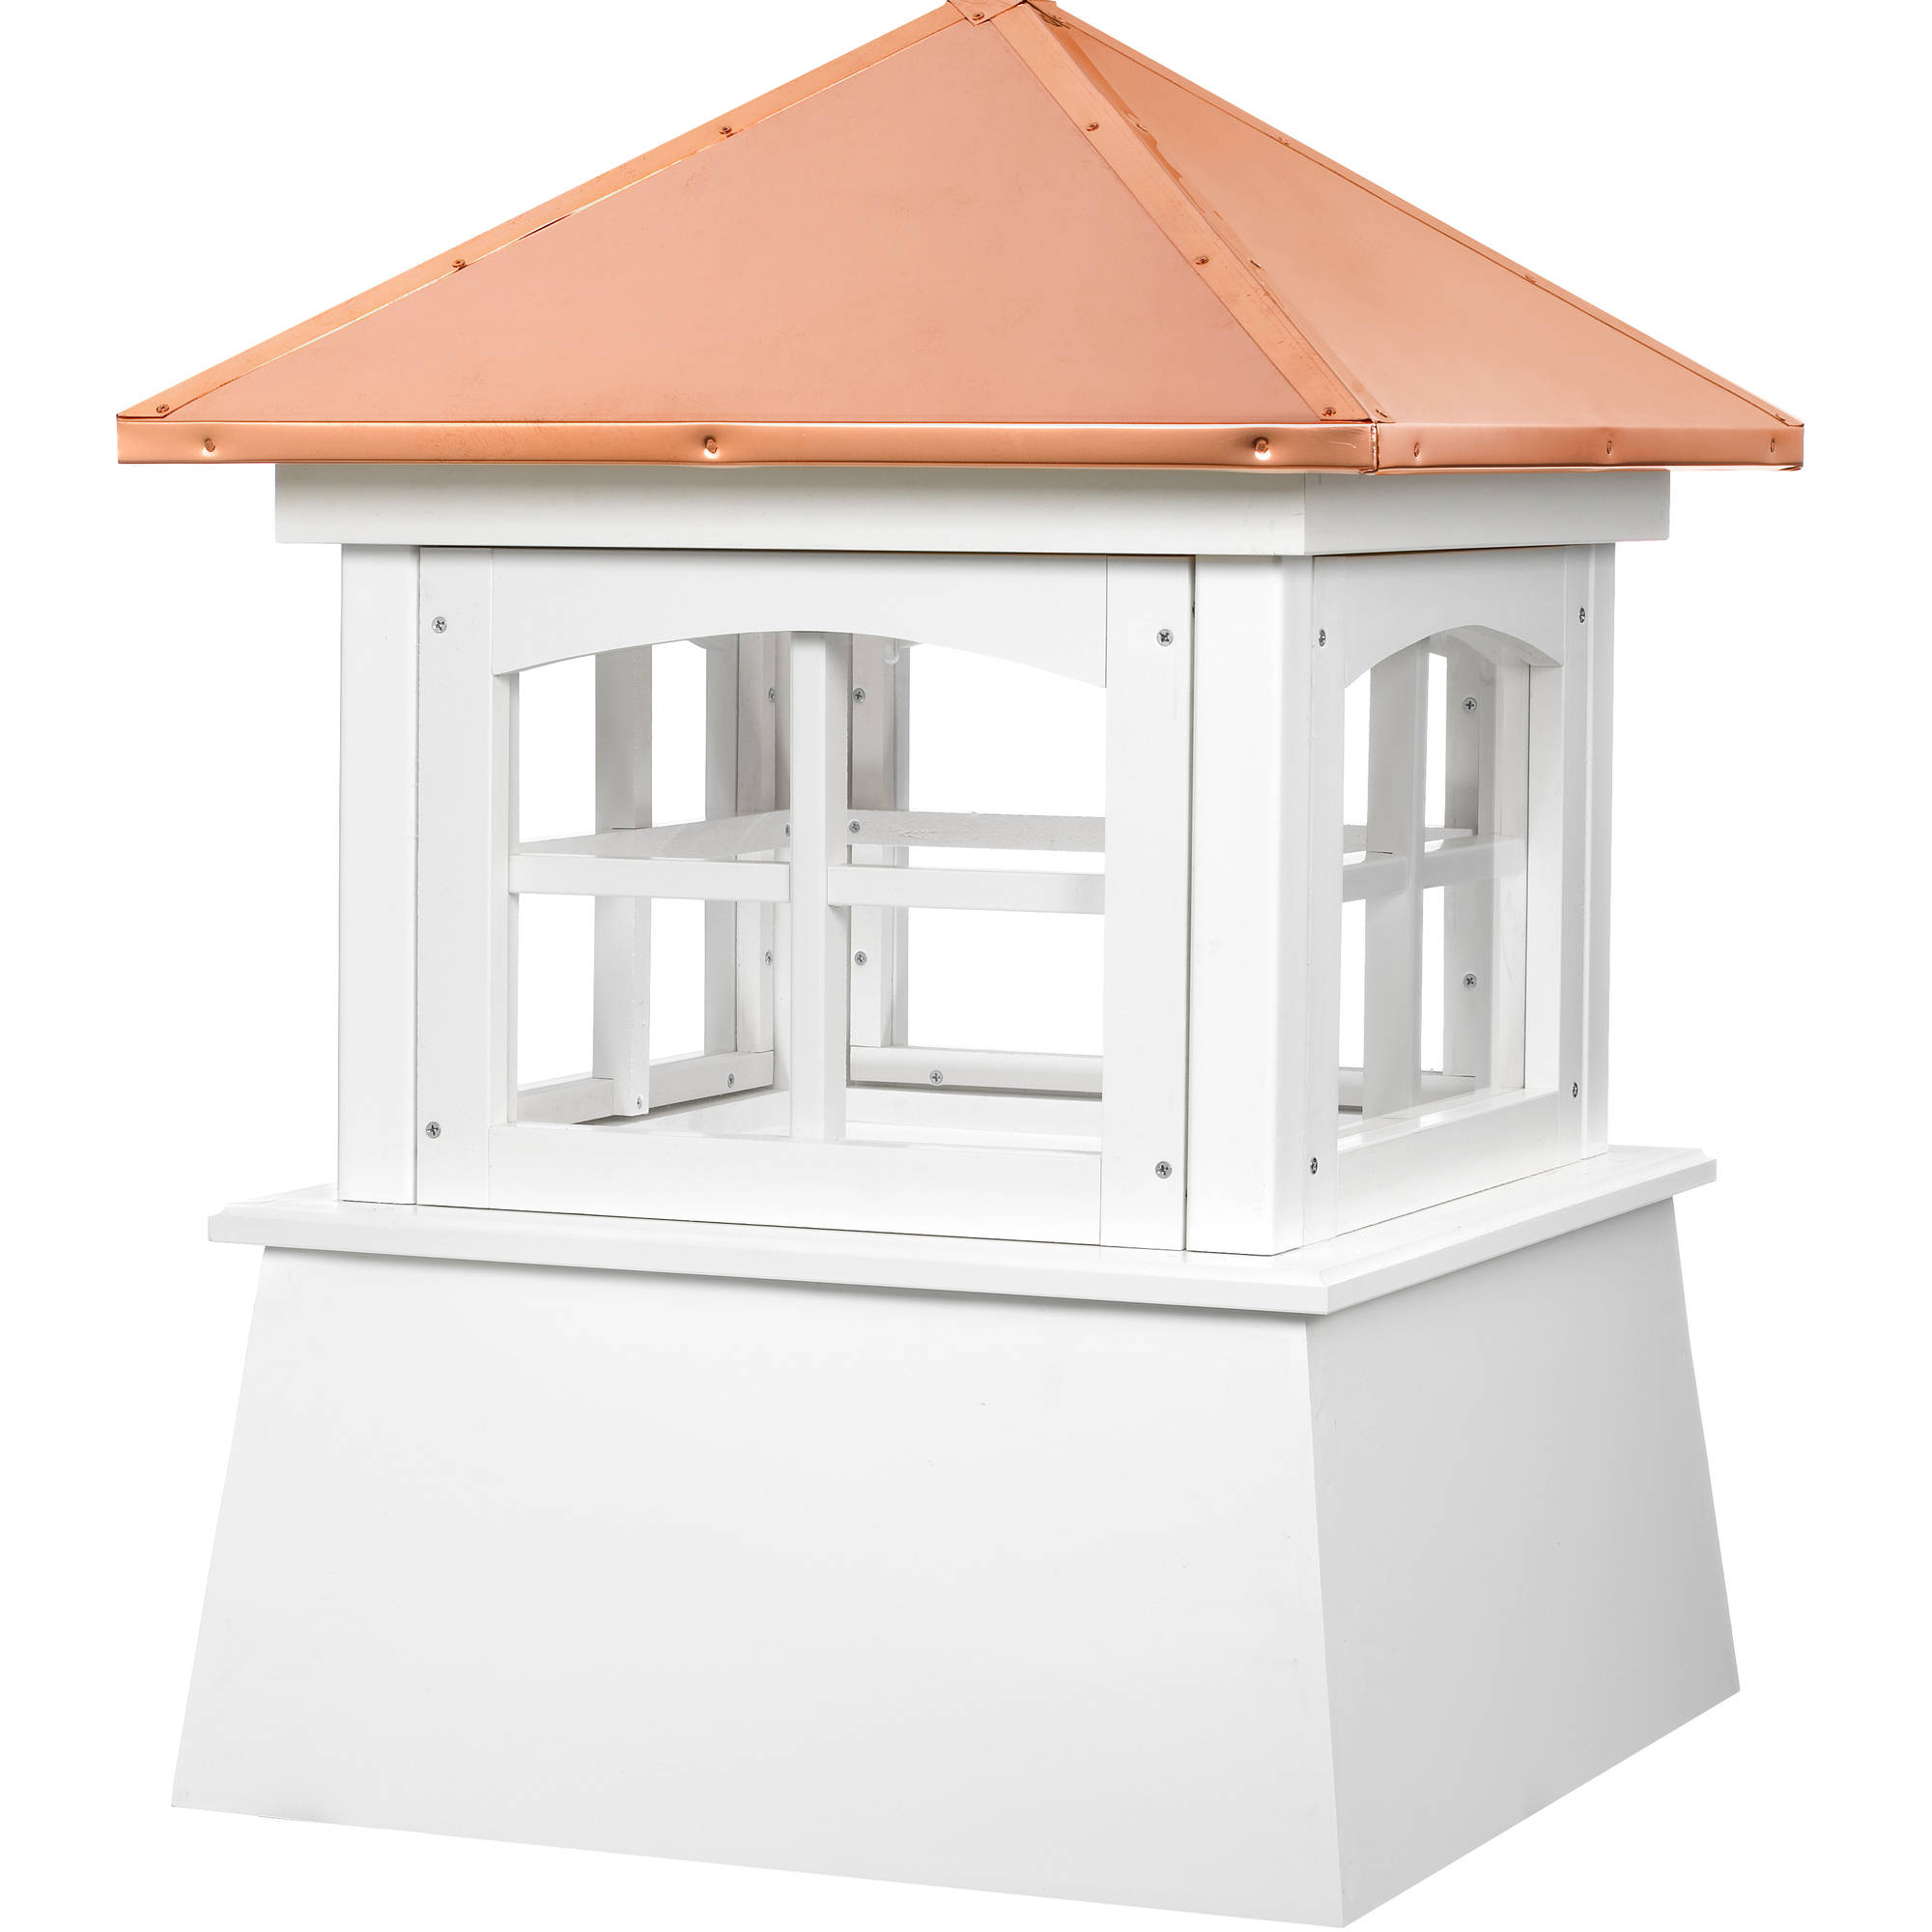 Huntington Cupola 18 inches x 25 inches by Good Directions